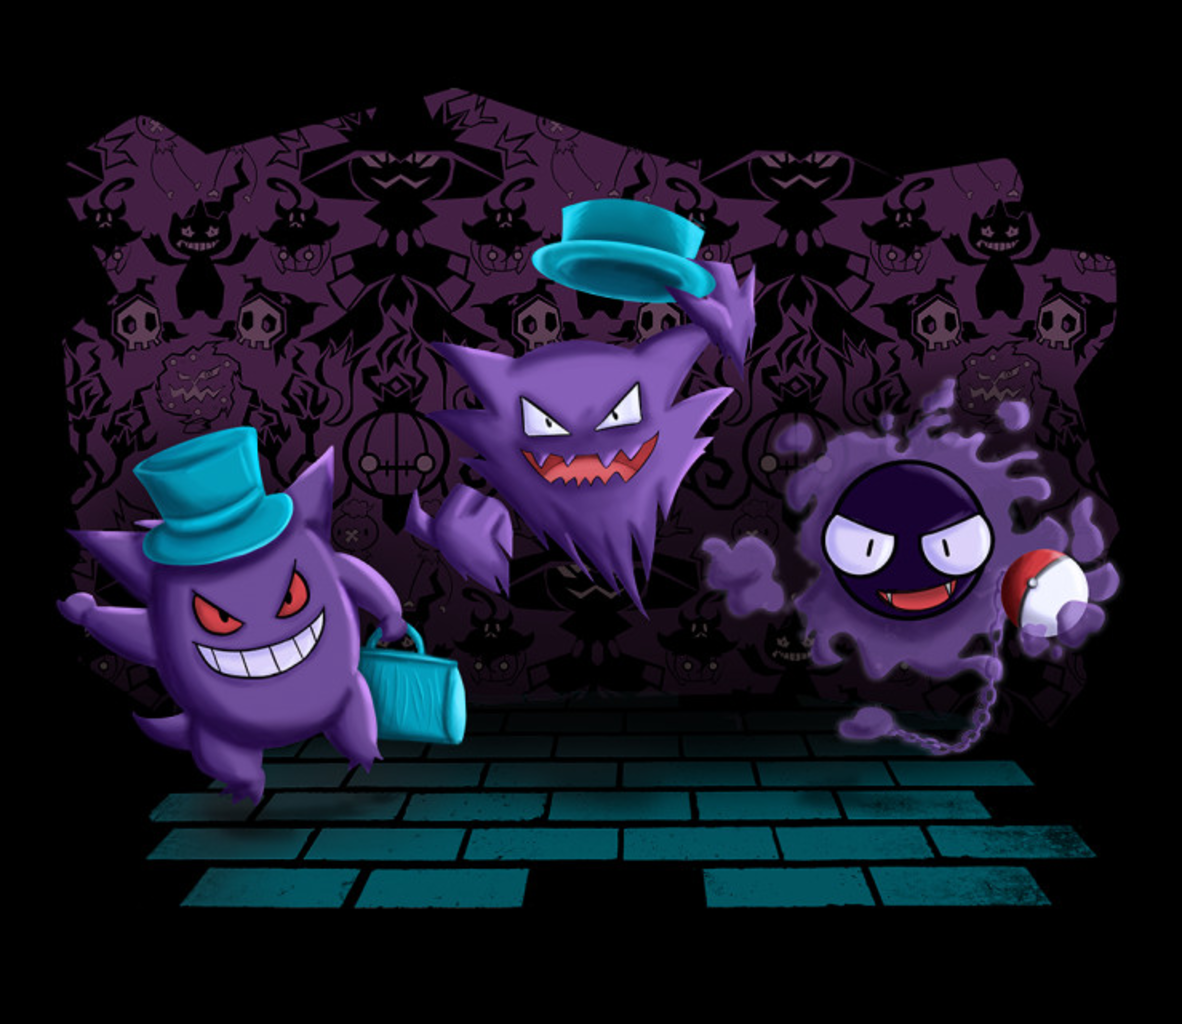 TeeFury: Going to Lavender Town?